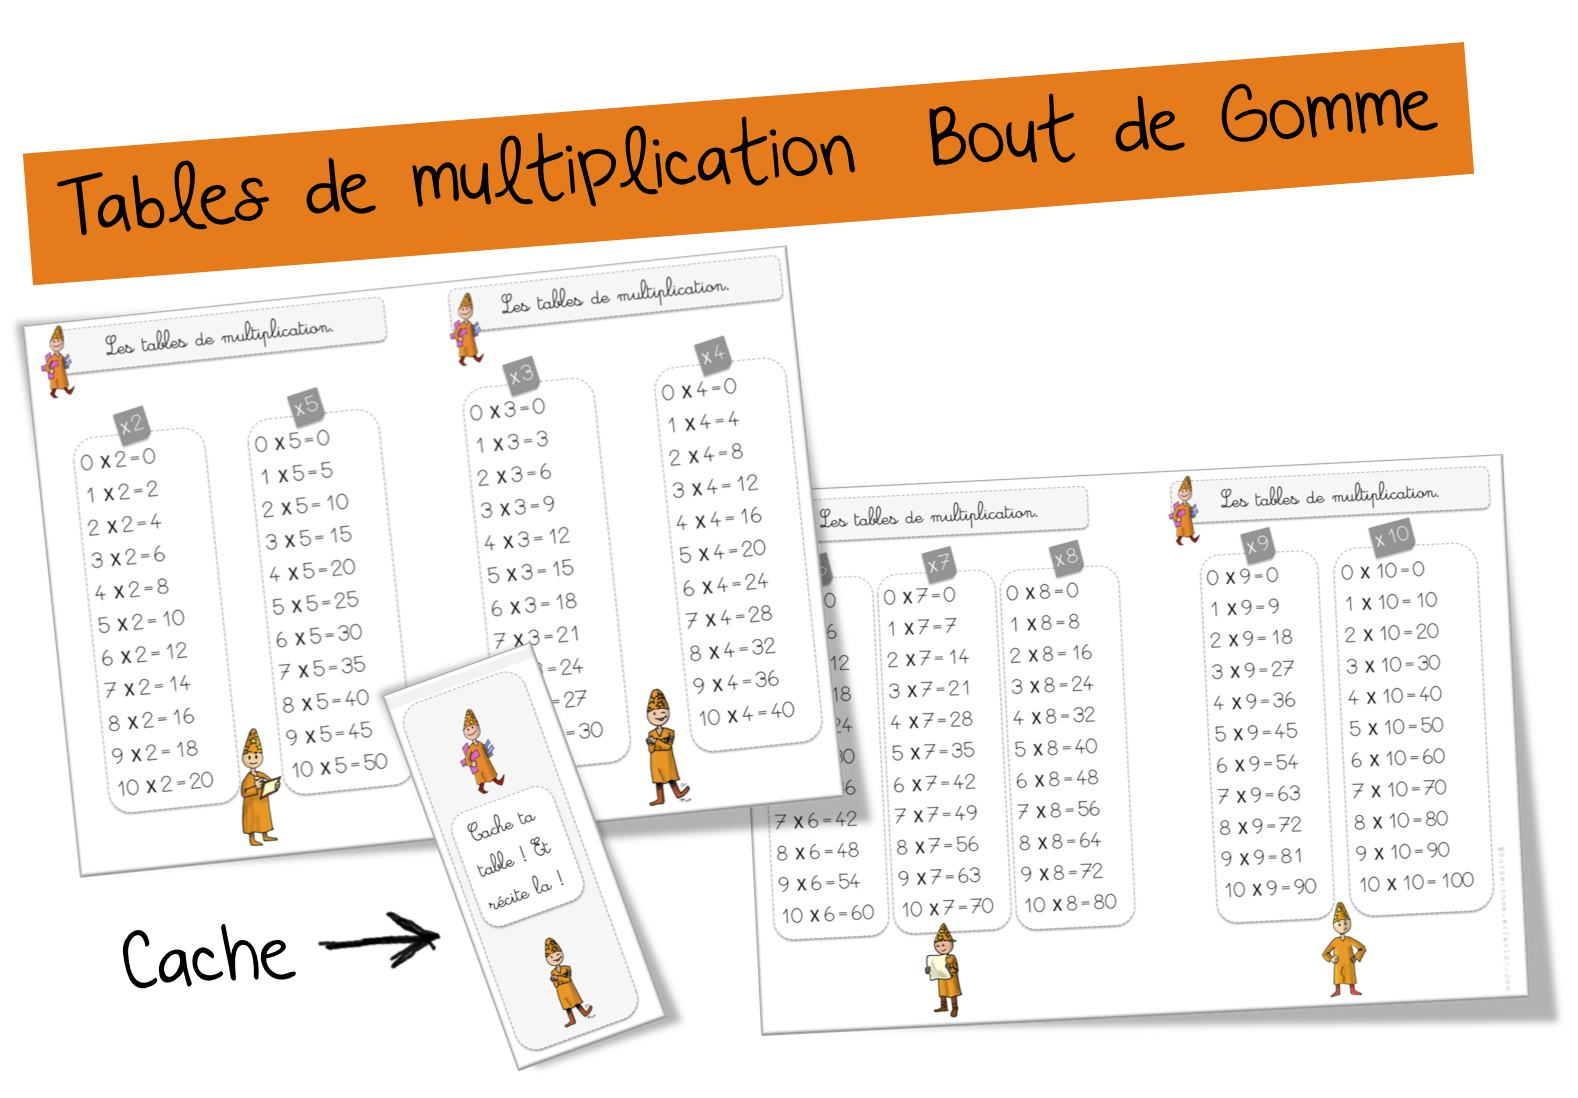 Exercice De Table De Multiplication 2 3 4 5 6